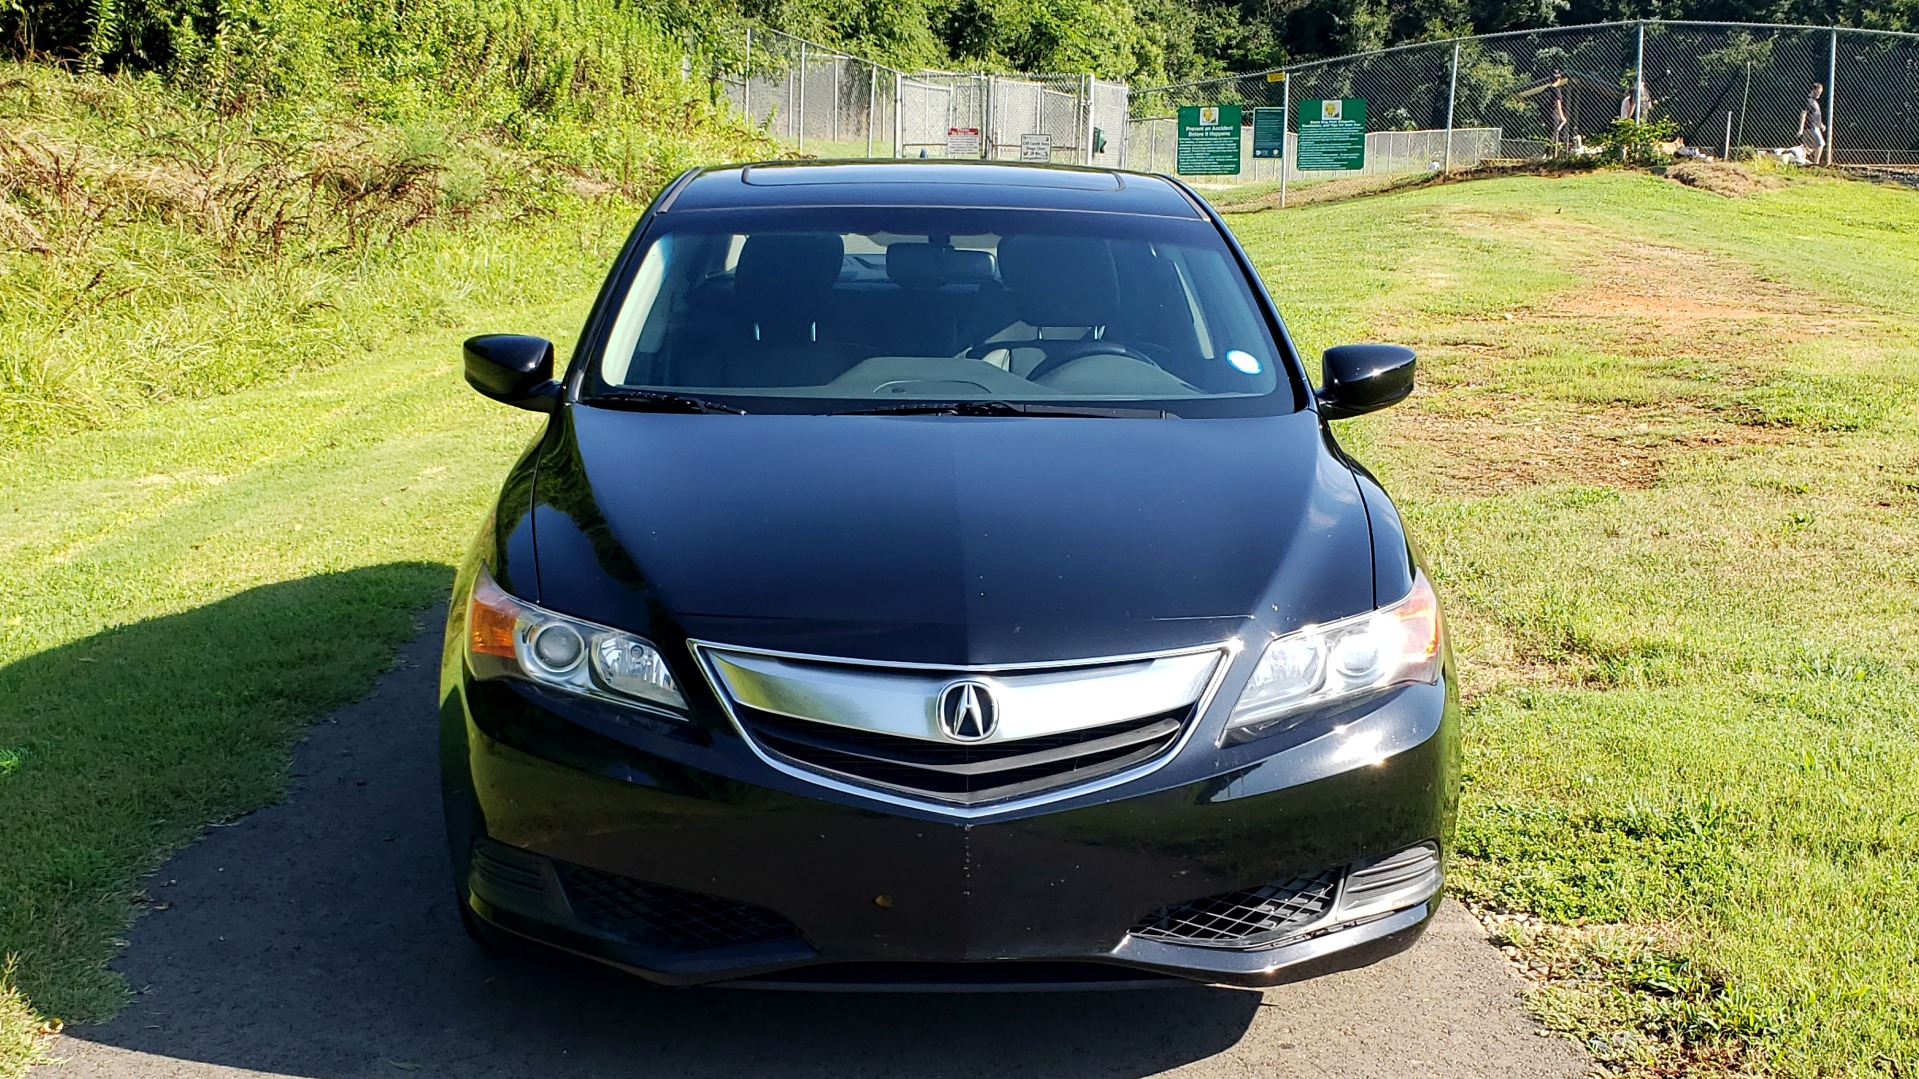 Used 2014 Acura ILX 4DR-SEDAN 2.0L / 5-SPD AUTO / SNRF / DUAL-ZONE CLIMATE / REARVIEW for sale Sold at Formula Imports in Charlotte NC 28227 9